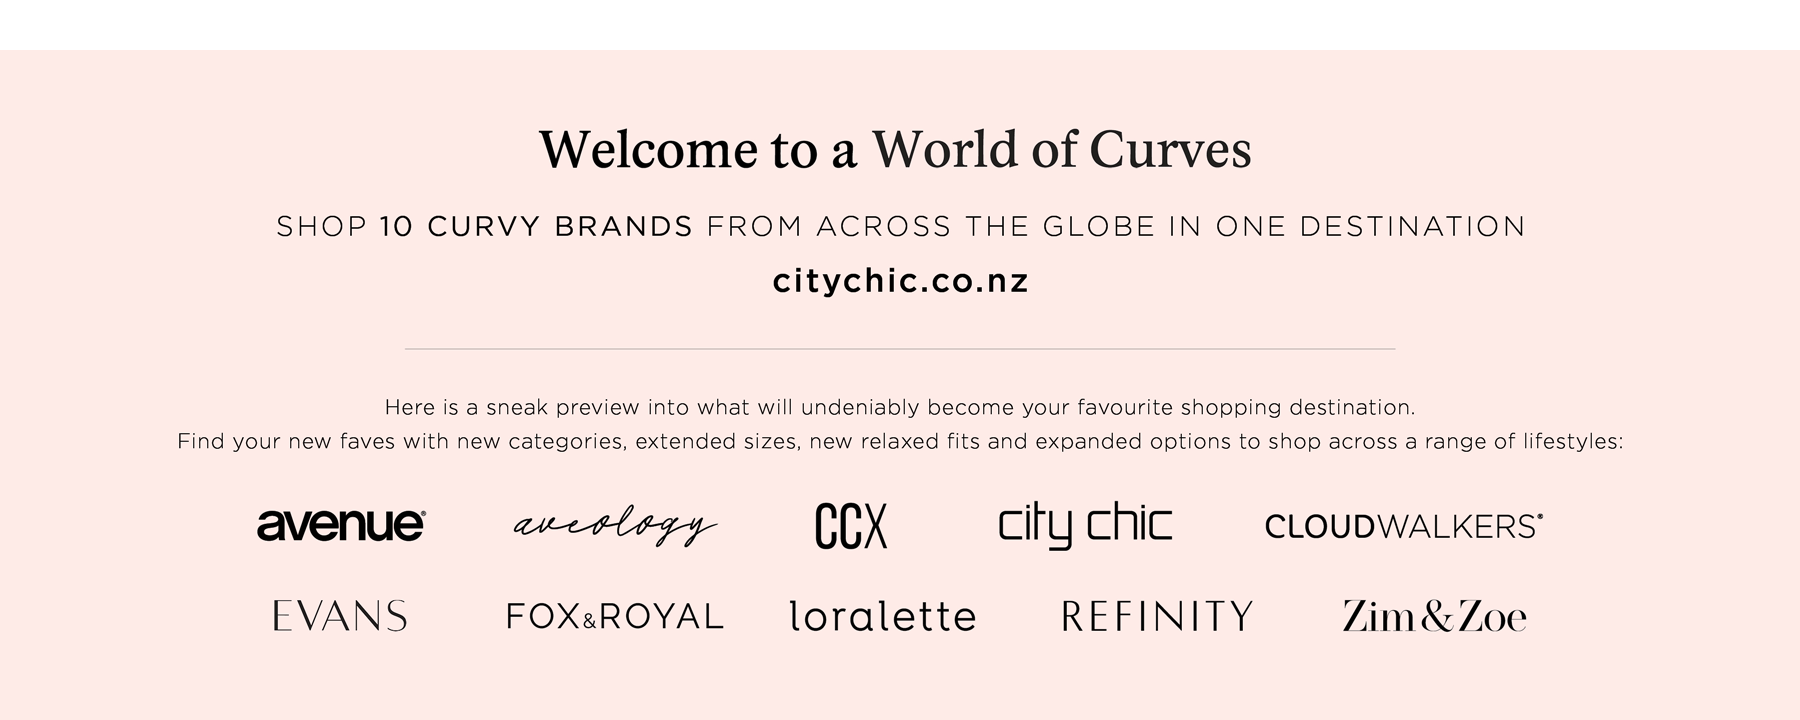 Welcome to a World of Curves